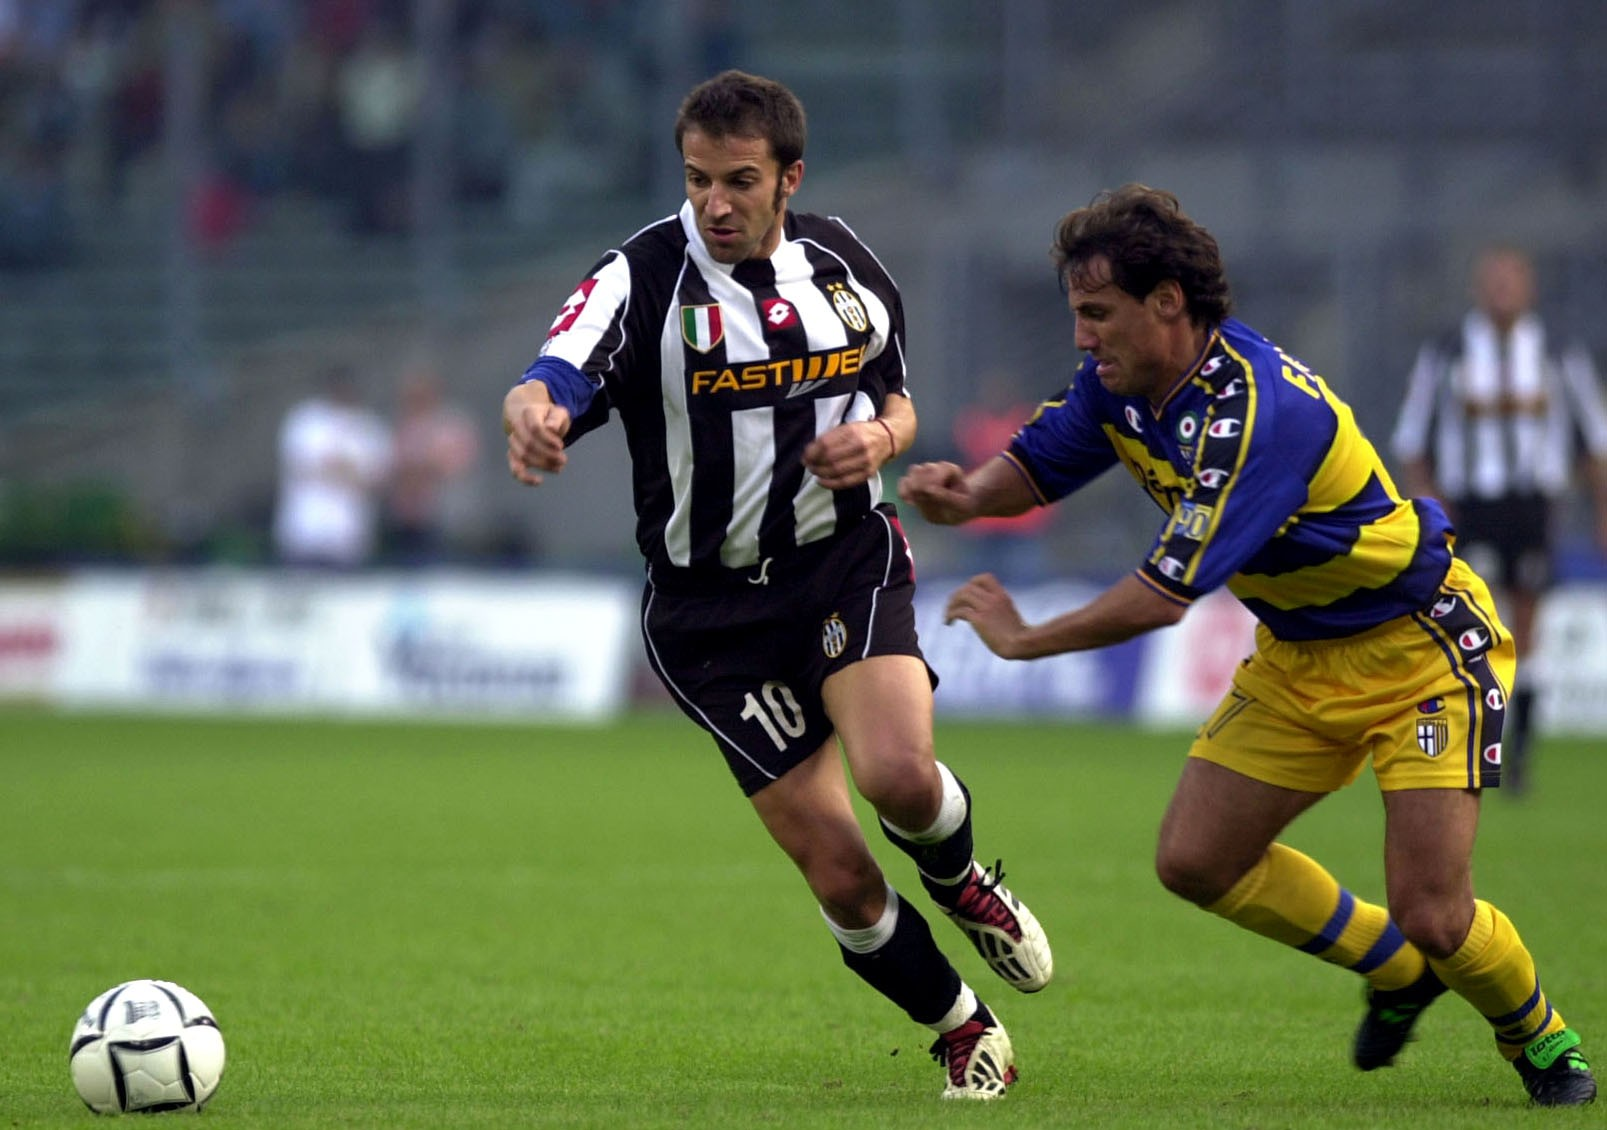 Juventus Soccer Legend Alessandro Del Piero On Life After ...